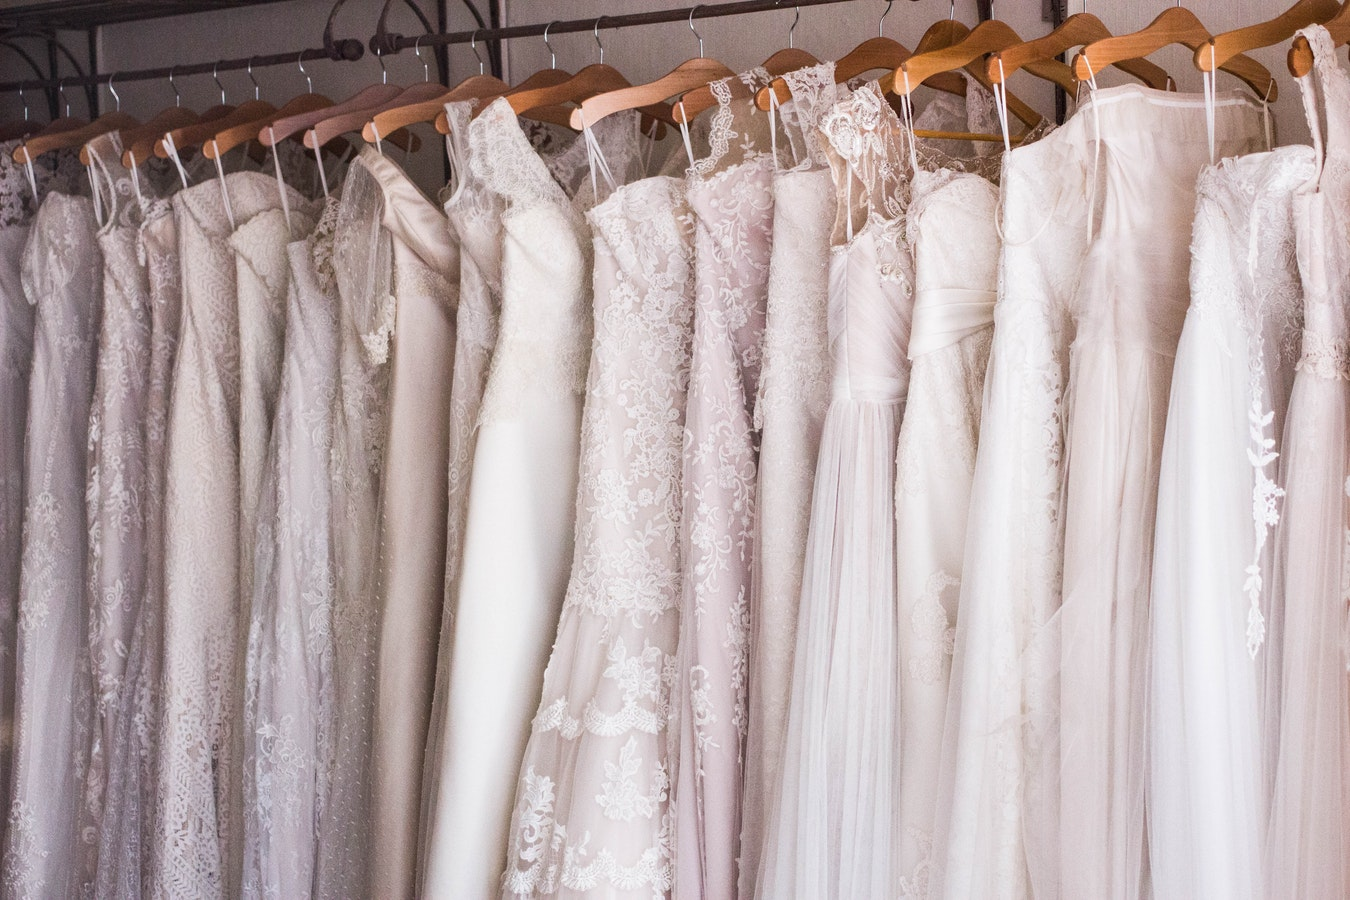 ros of wedding dresses on hangers.